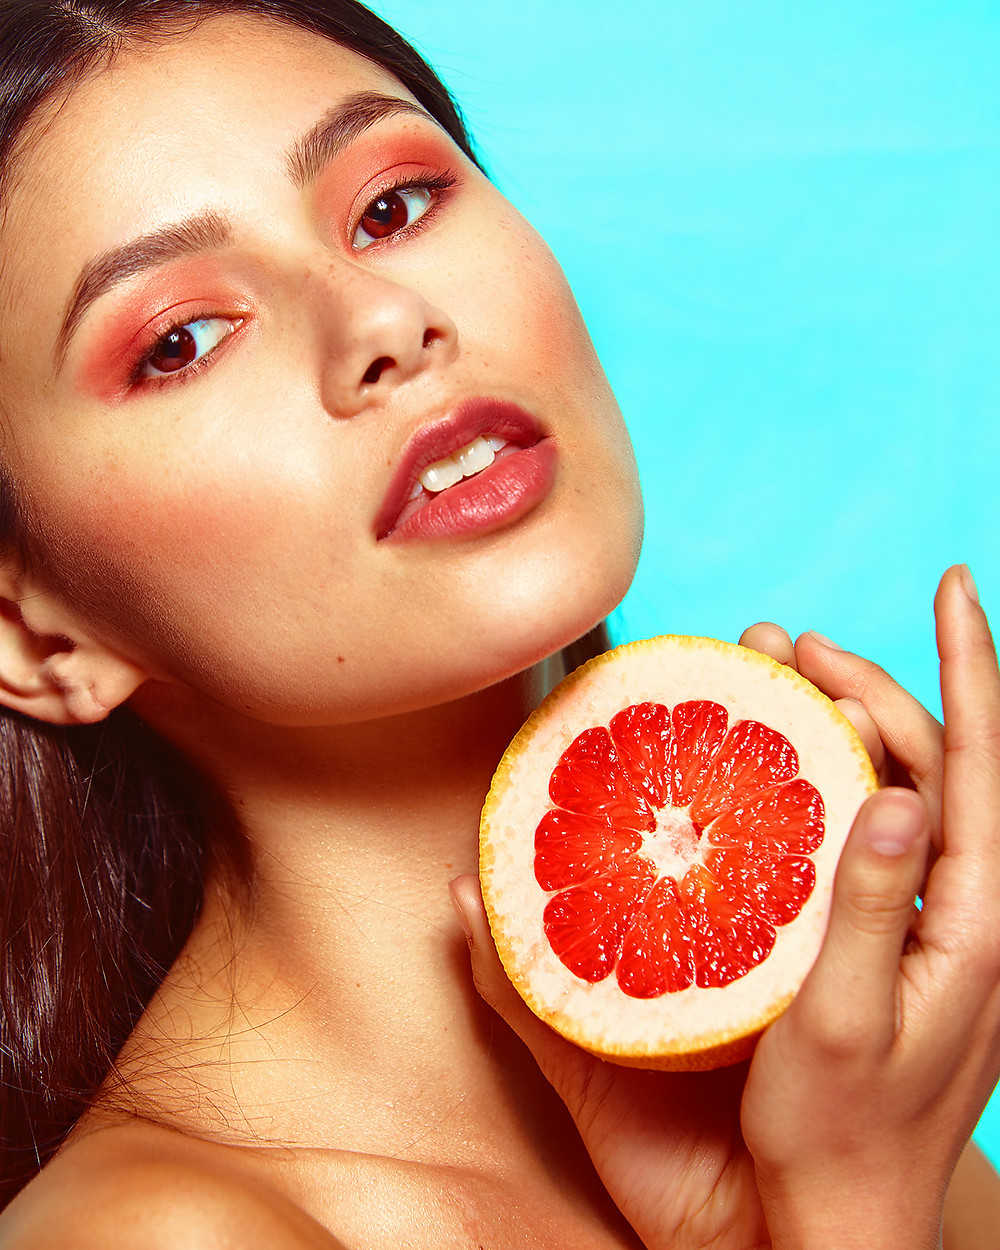 Model Genevieve van Dam holds sliced grapefruits in a fruit-inspired beauty editorial photo shoot published in New Face Fashion Magazine and photographed by commercial and fashion photographer Patrick Patton.